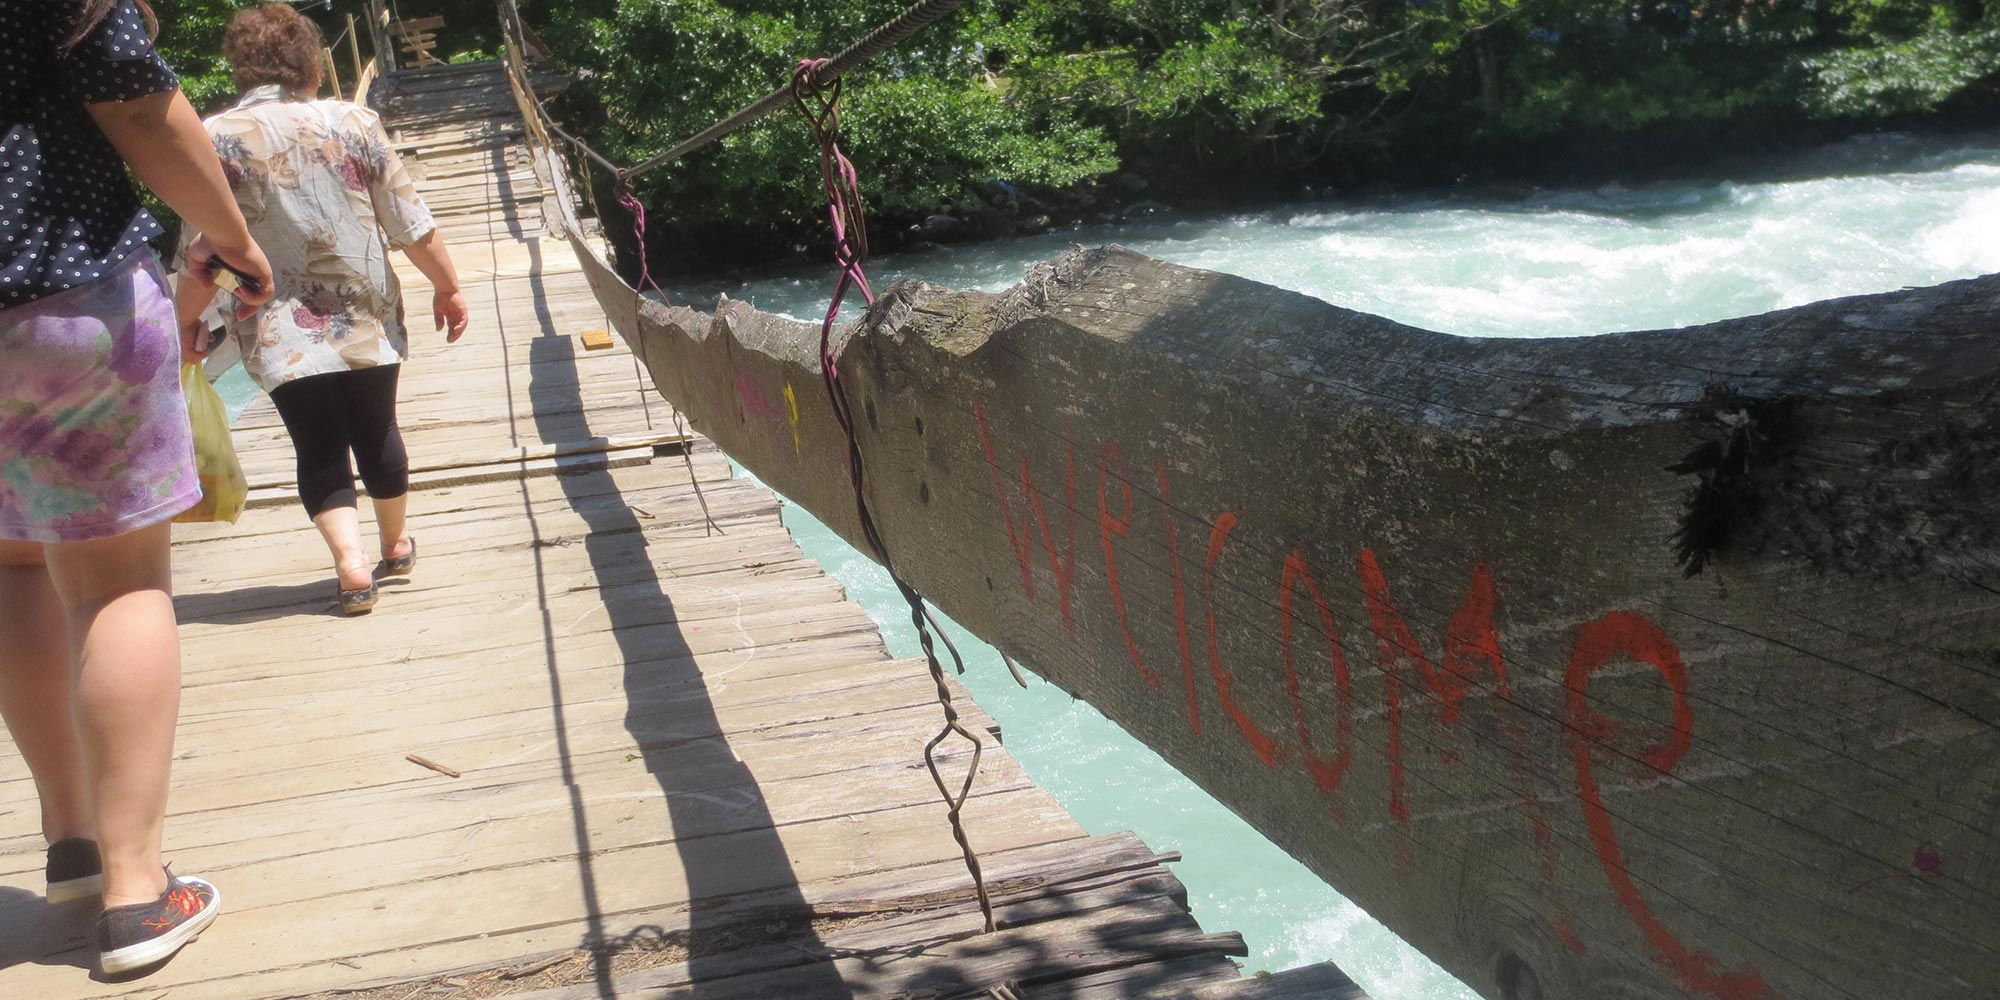 A wooden hanging bridge over a strong river stream. The word welcome is written in red letters on the bridge.